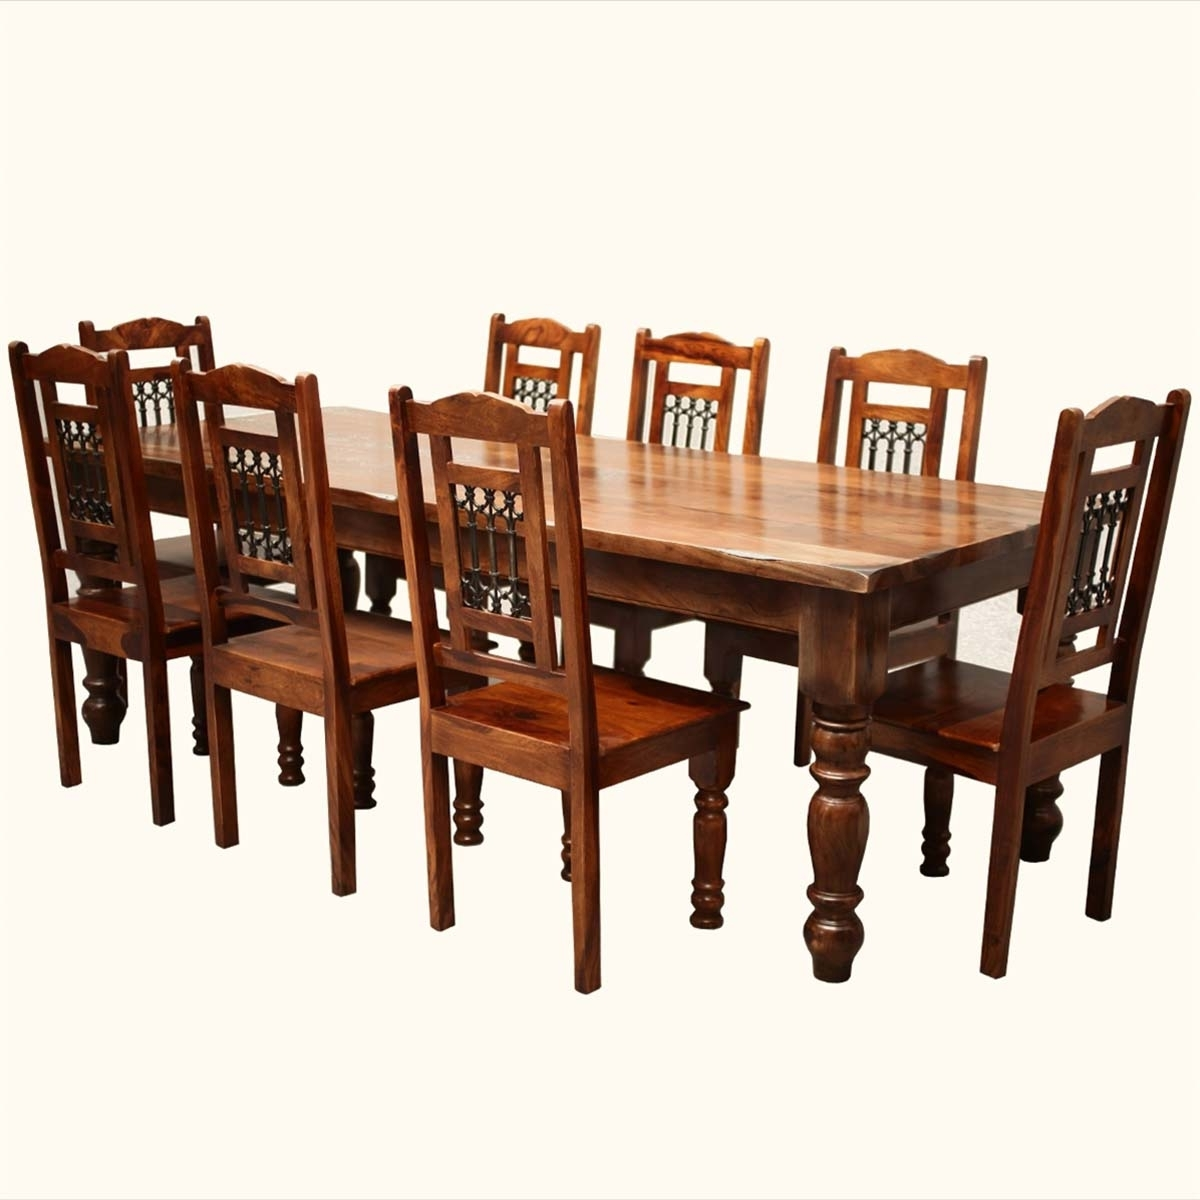 Dining Tables Set For 8 With Regard To Favorite 8 Chair Dining Table Sets Gallery Dining, Dining Table Set 8 Chairs (Gallery 11 of 25)